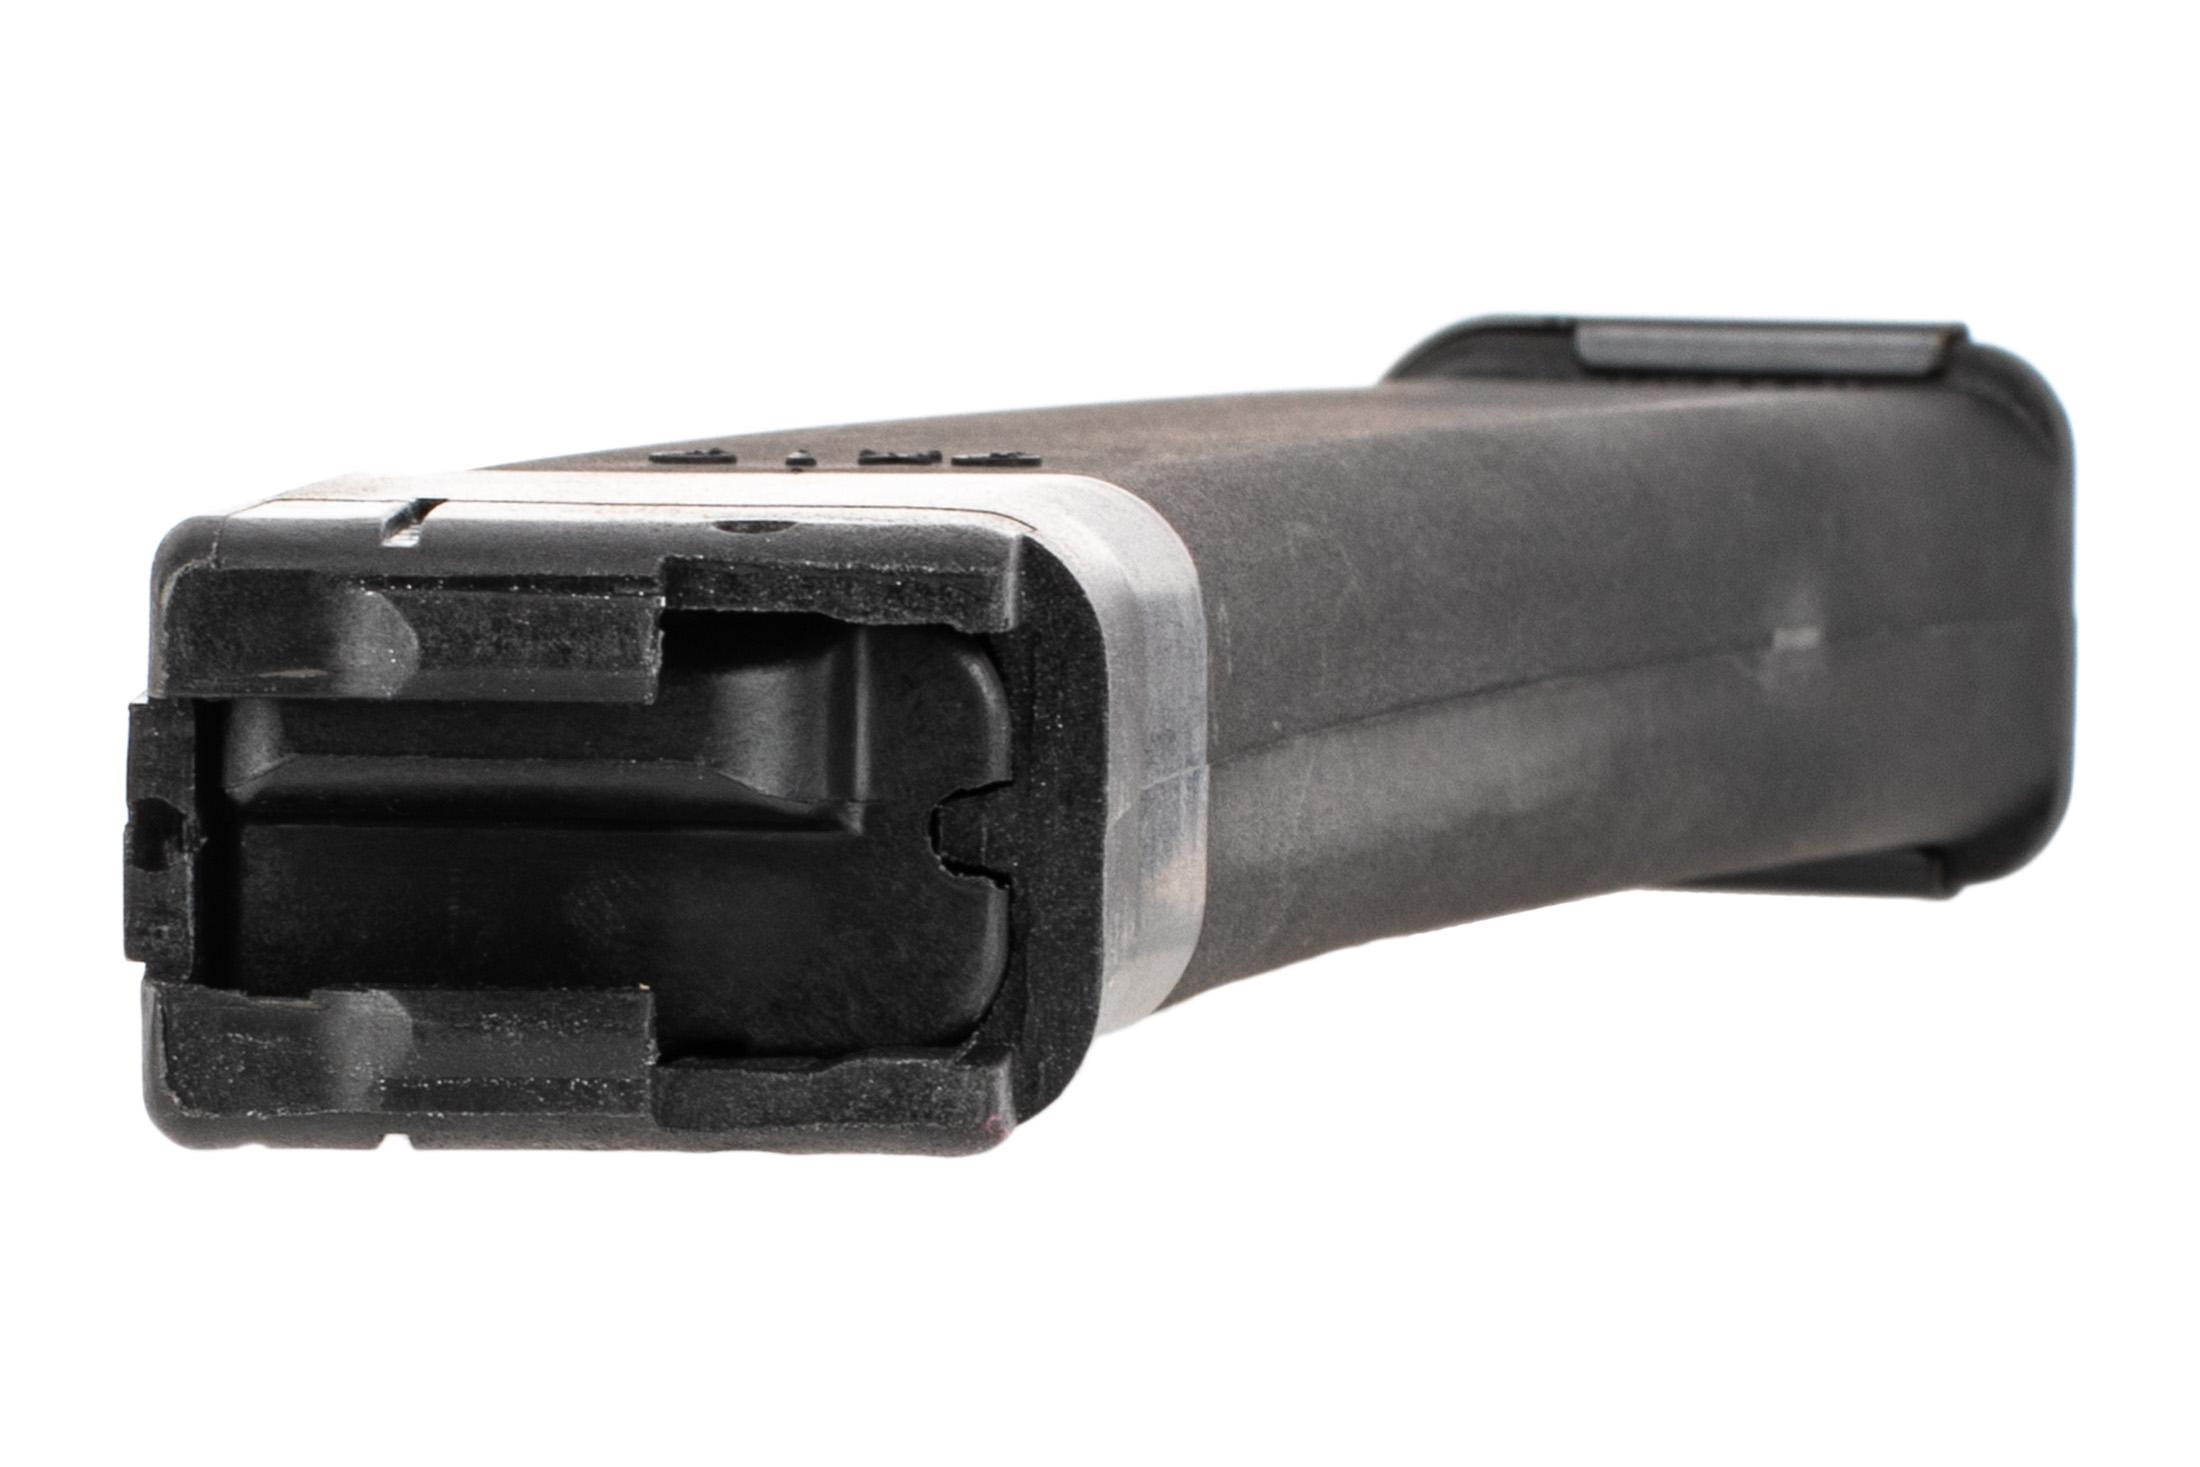 Kalashnikov USA 9mm polymer magazine for the KR9 holds 10-rounds of your favorite ammo